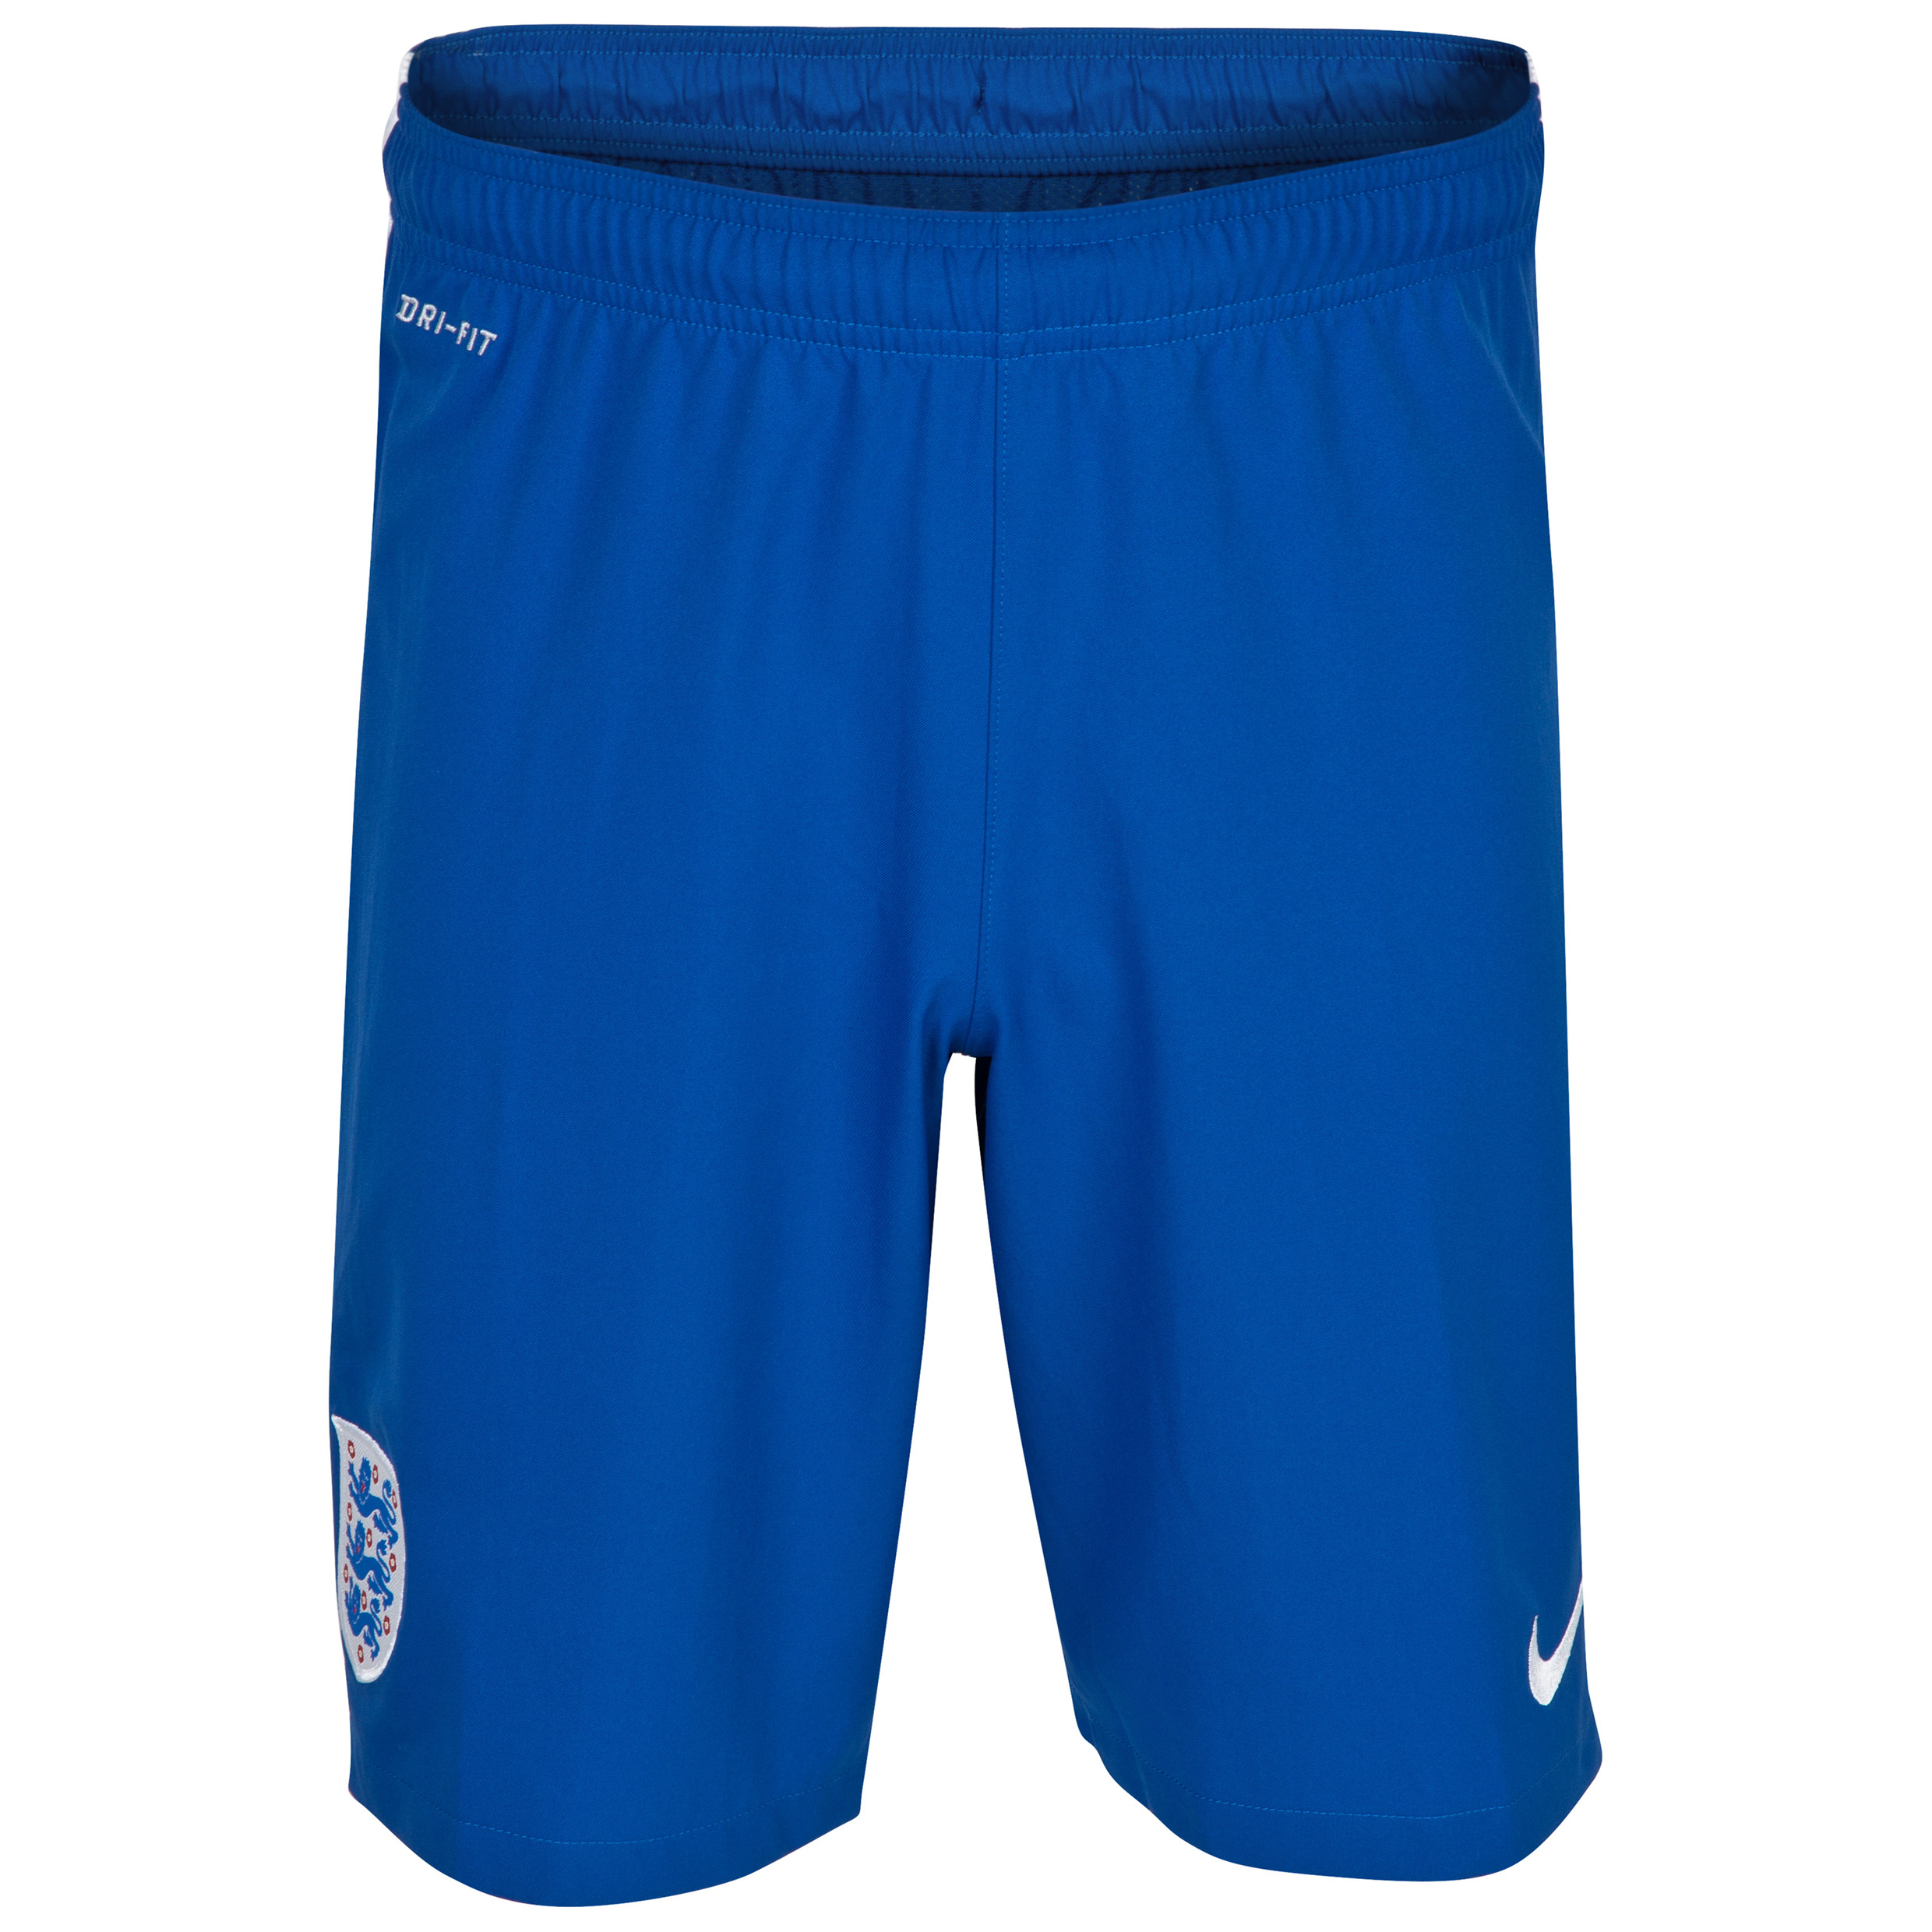 England Home Change Short 2014/15 - Kids Royal Blue